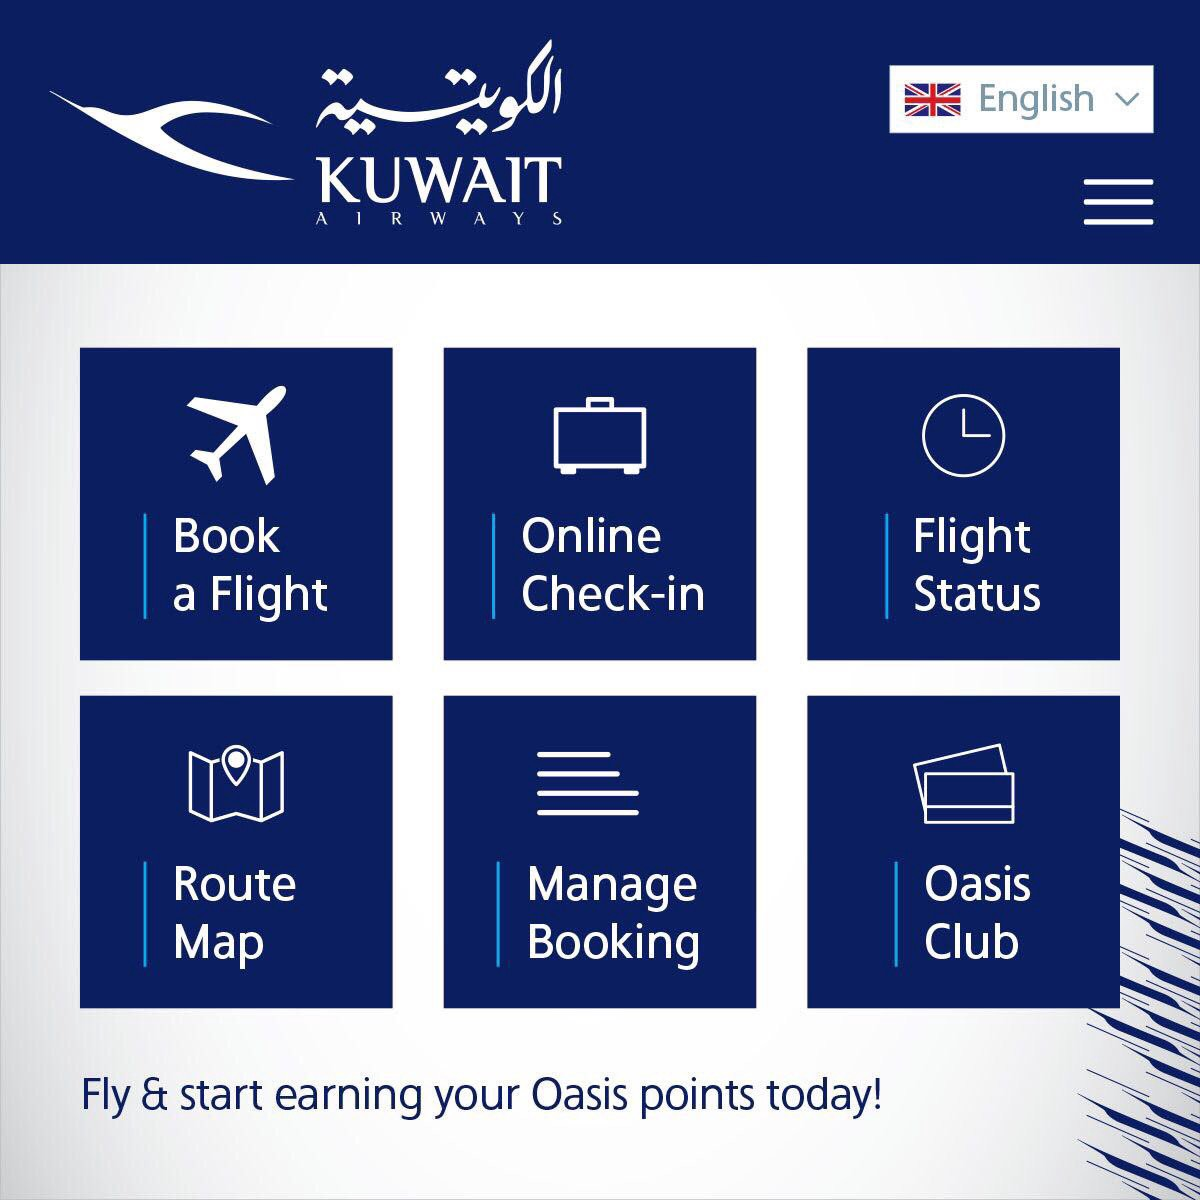 How can I check my PNR Status in Kuwait Airways? Manage Booking